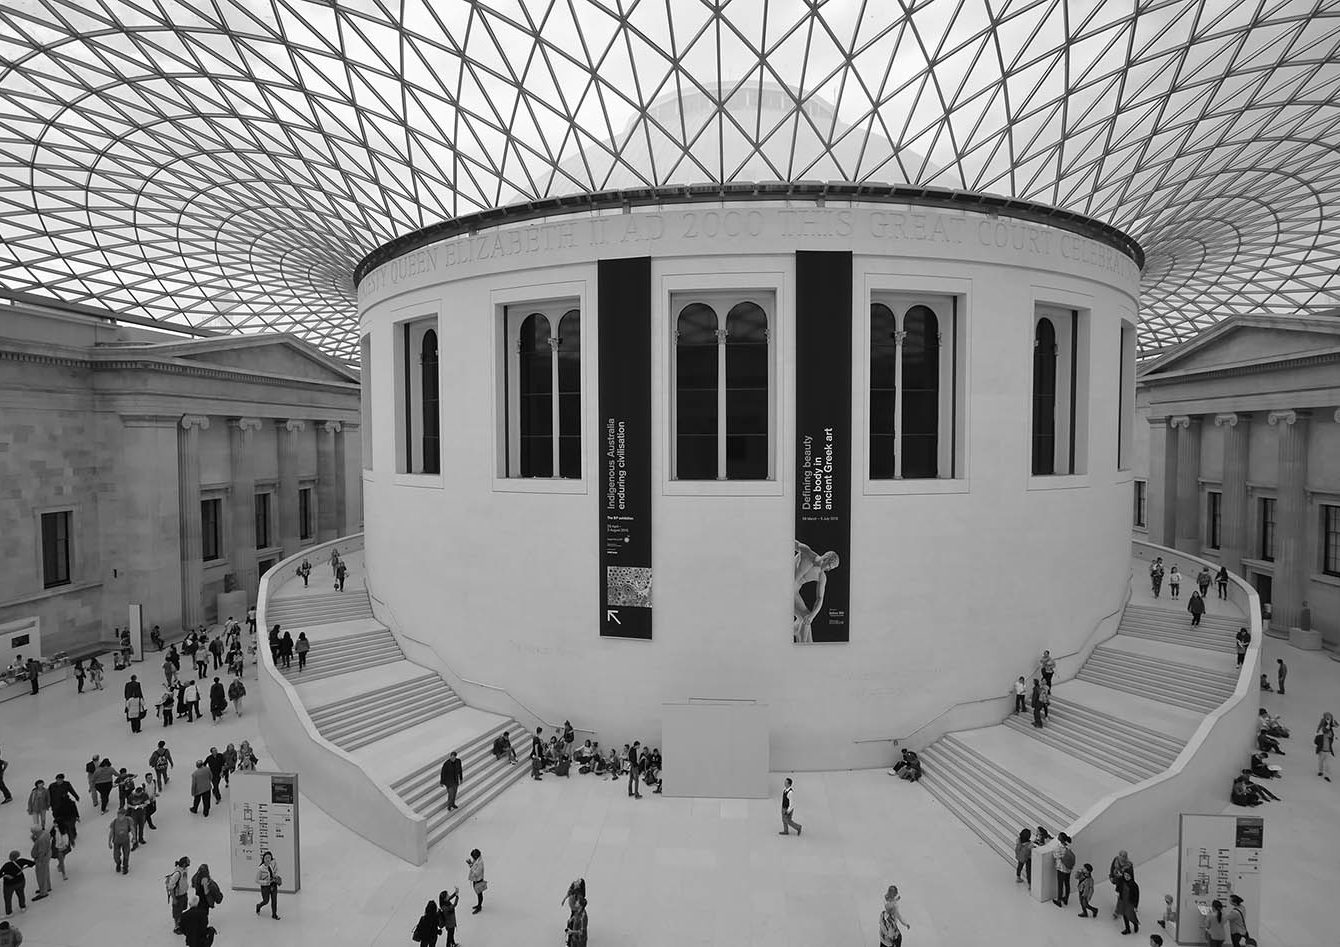 Trip To The The British Museum